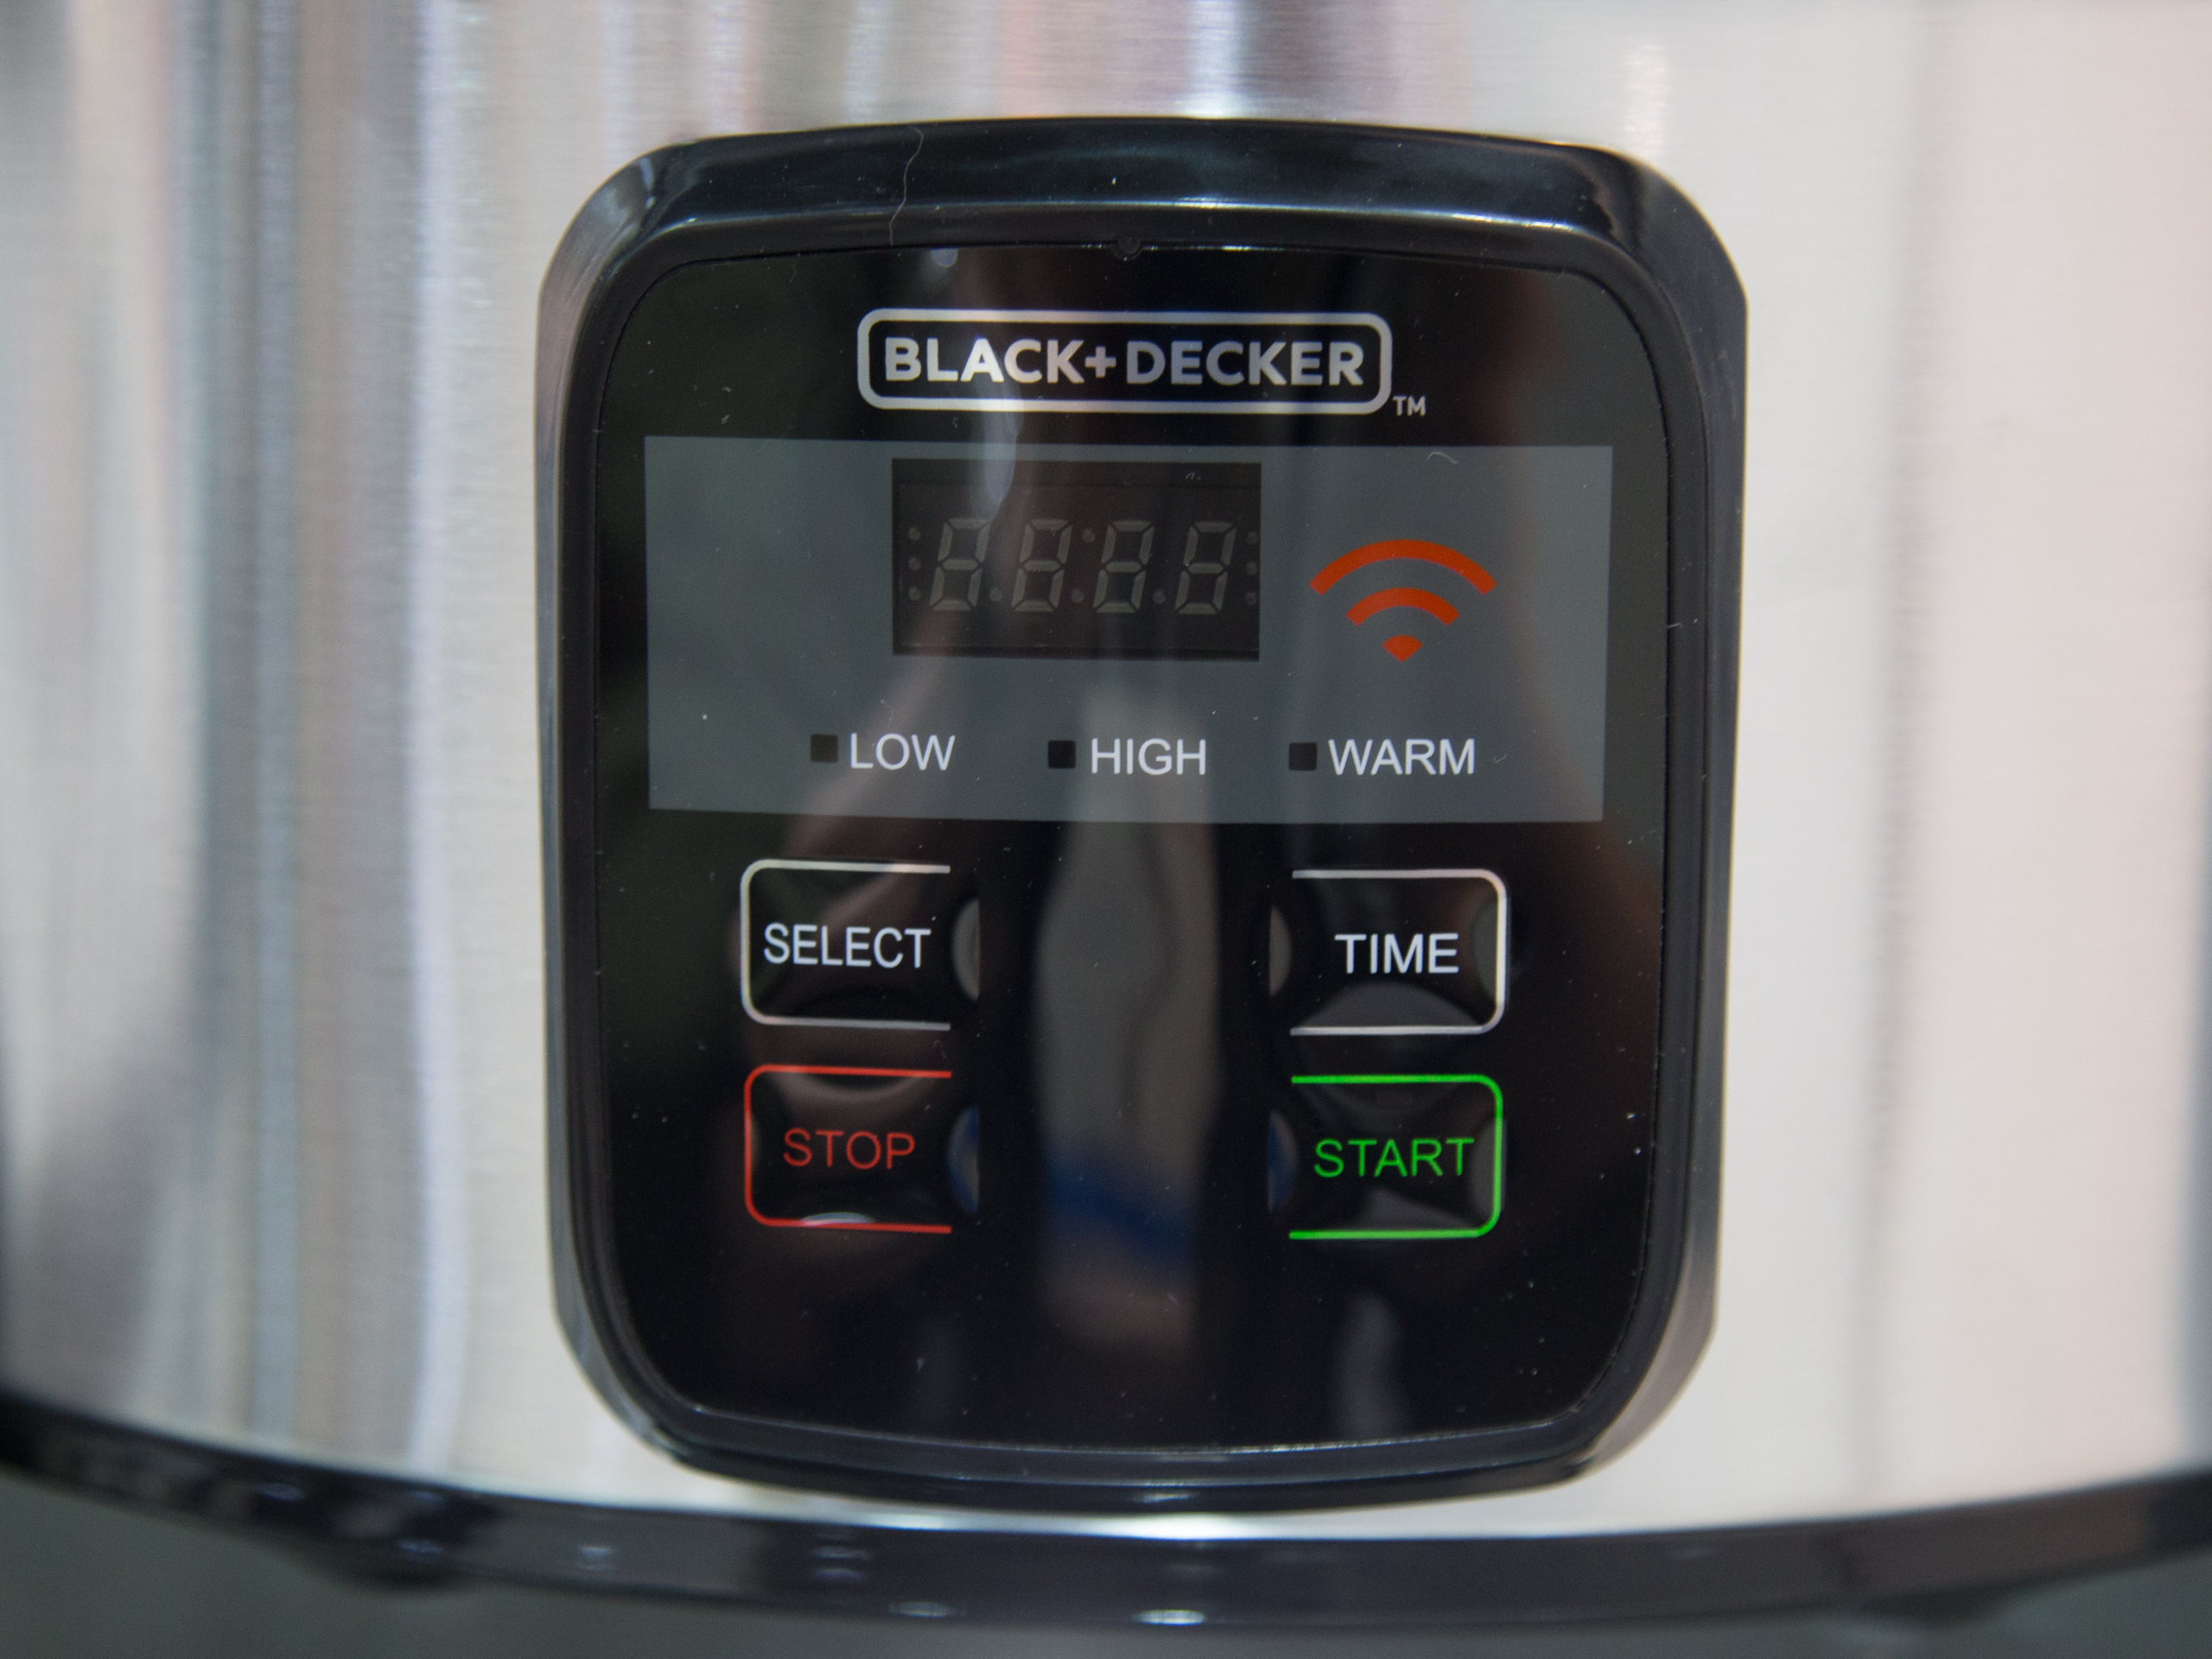 Black & Decker WiFi-Enabled Slow Cooker